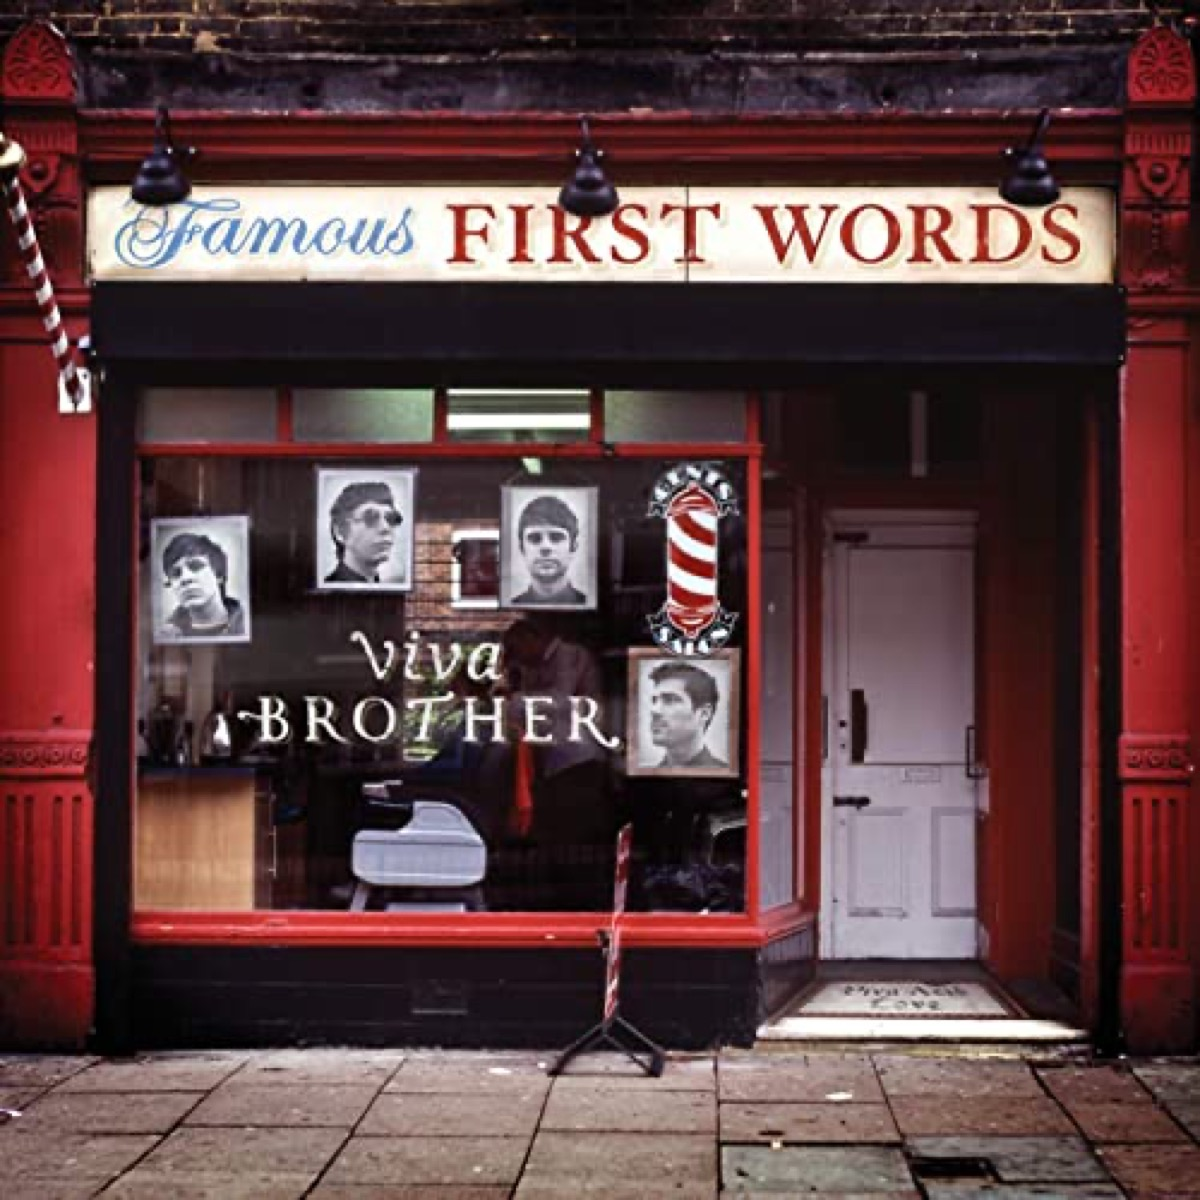 """The album cover of """"Famous First Words"""" by Viva Brother"""